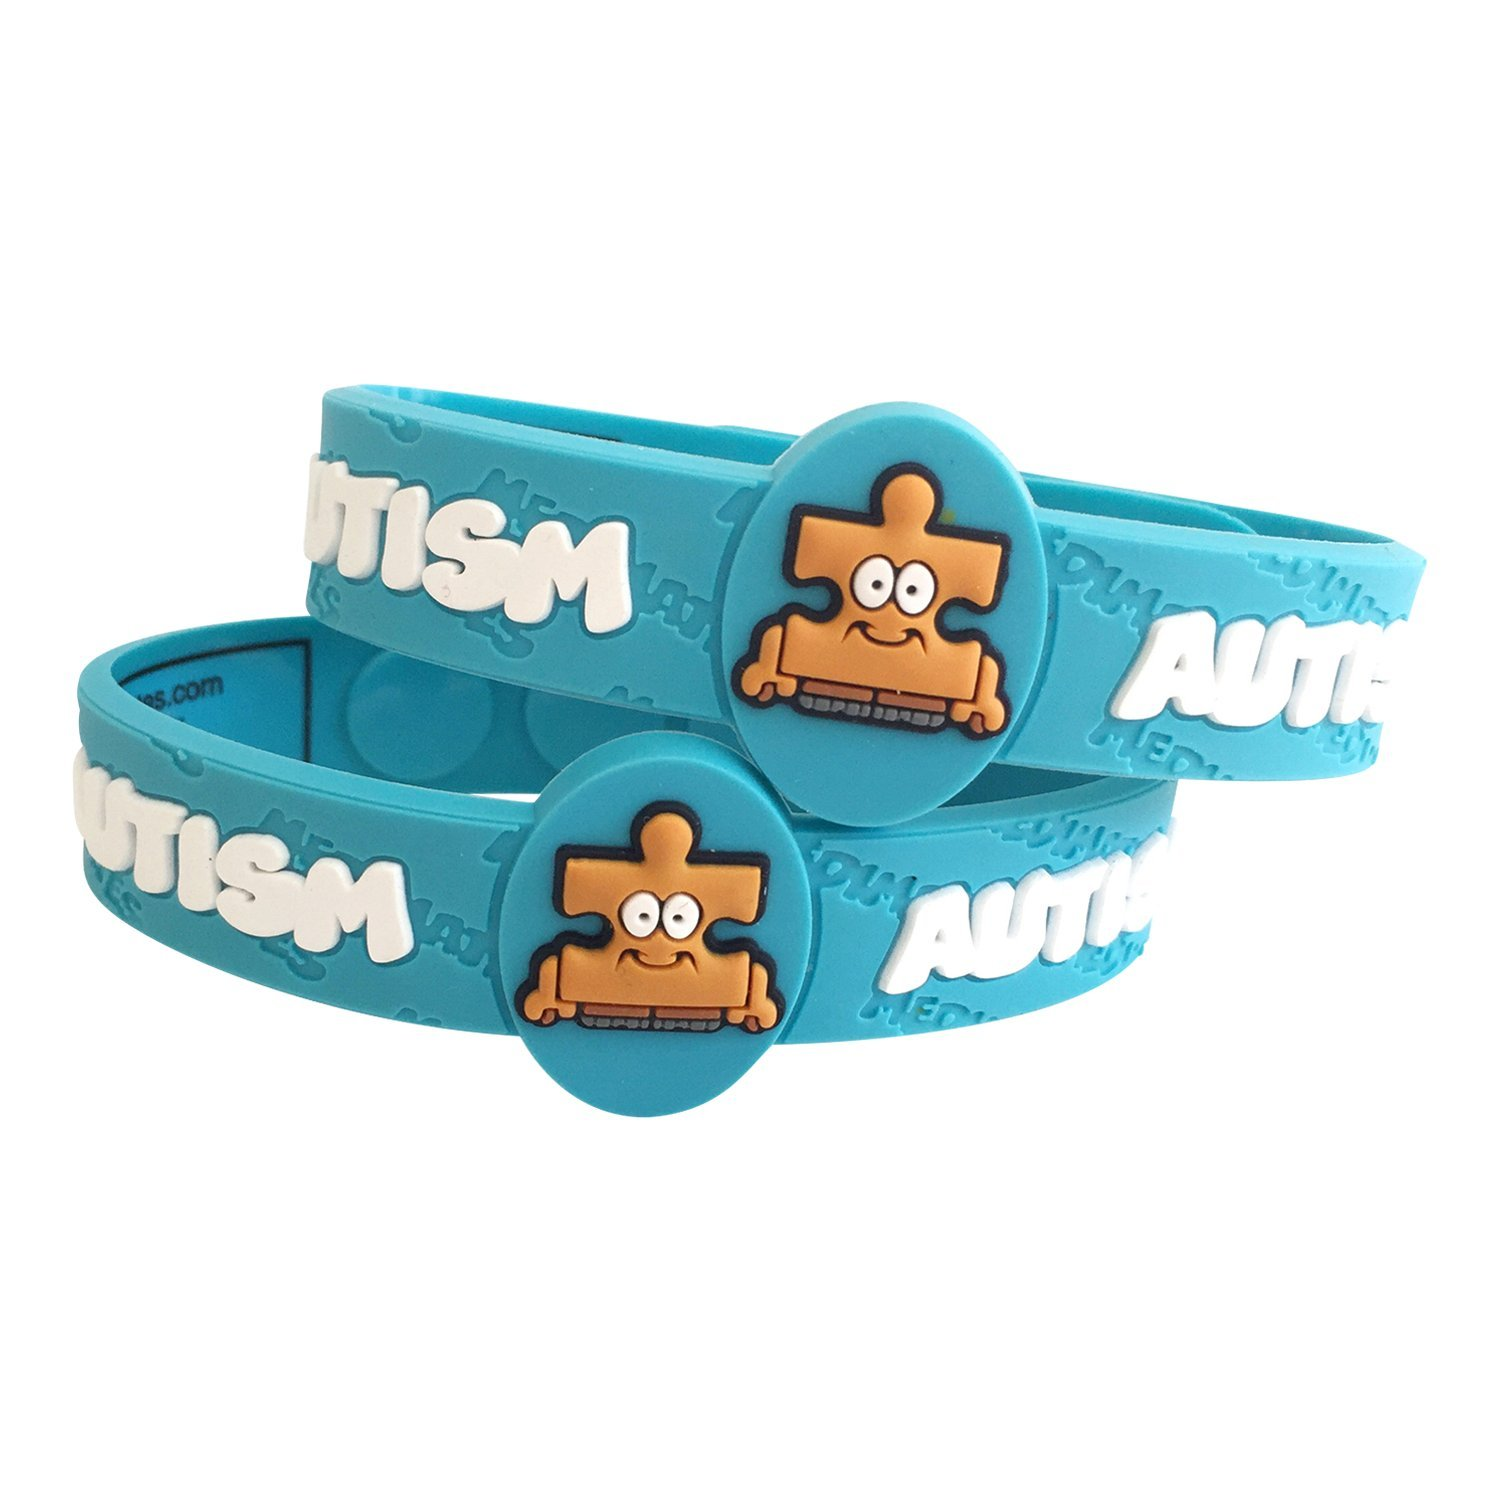 Cheap Tt Small Medic Pack Find Deals On Line At Circuitmedic Part Get Quotations Allermates Kids Medical Wristband Autism Childrens Alert Awareness Bracelet 2